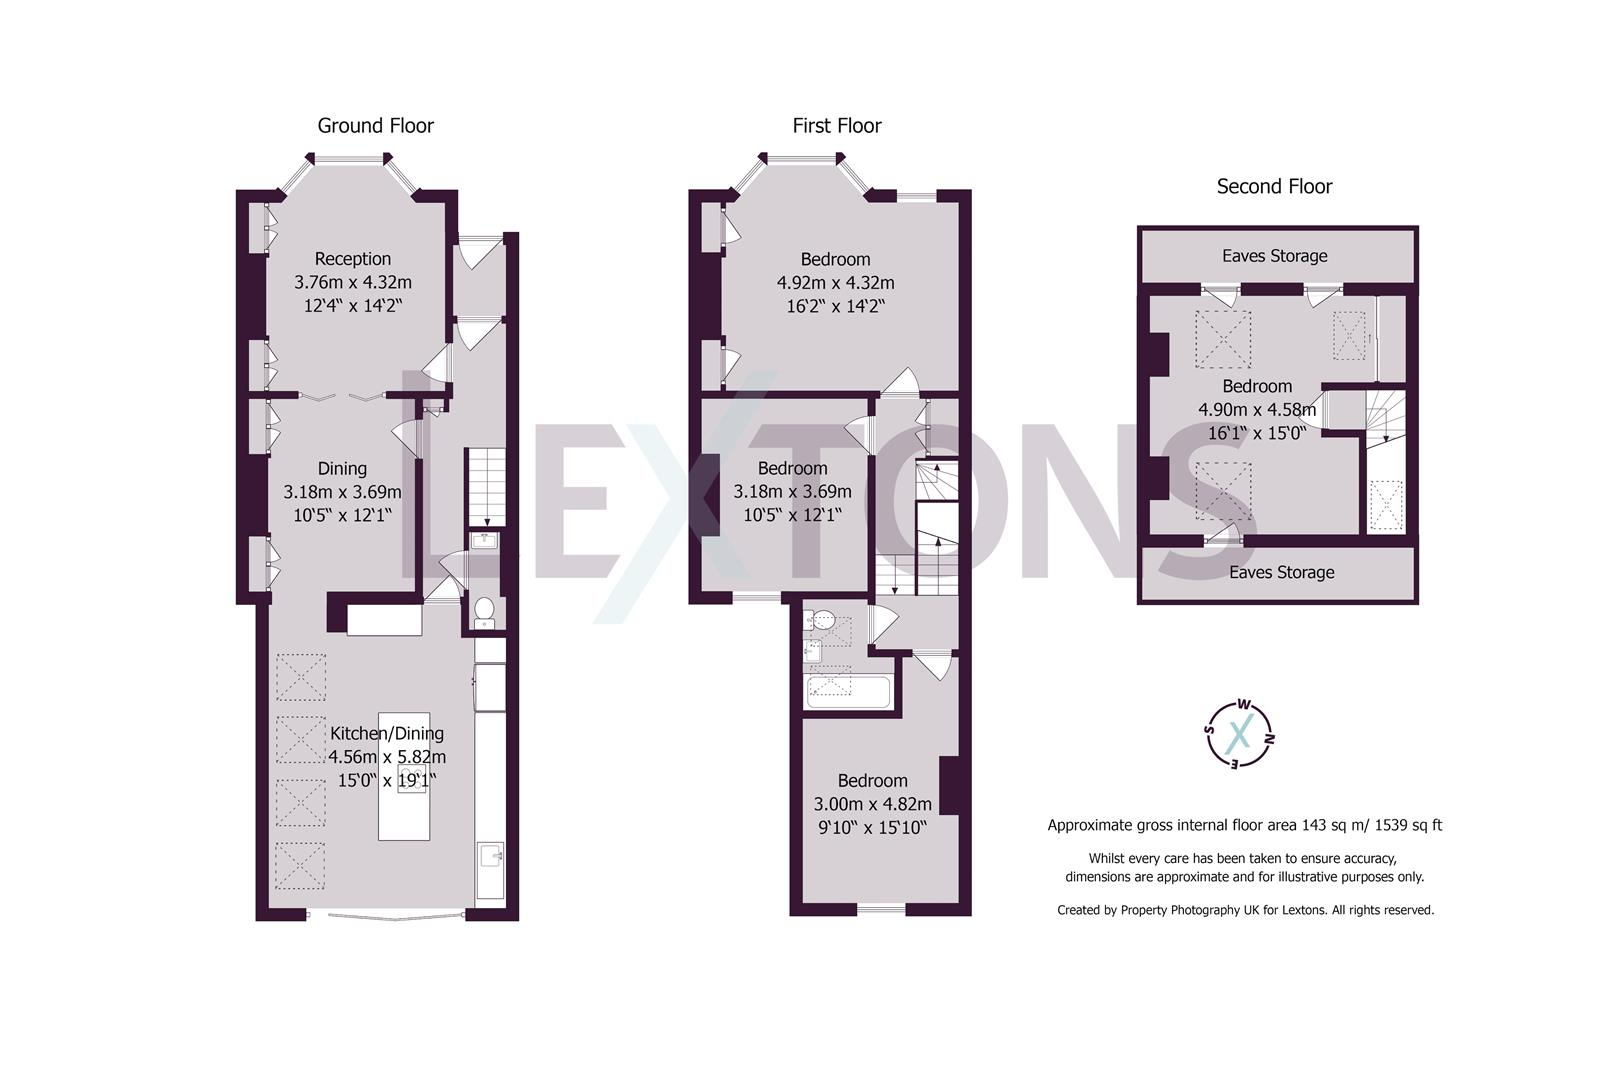 Floorplans For Waldegrave Road, Brighton